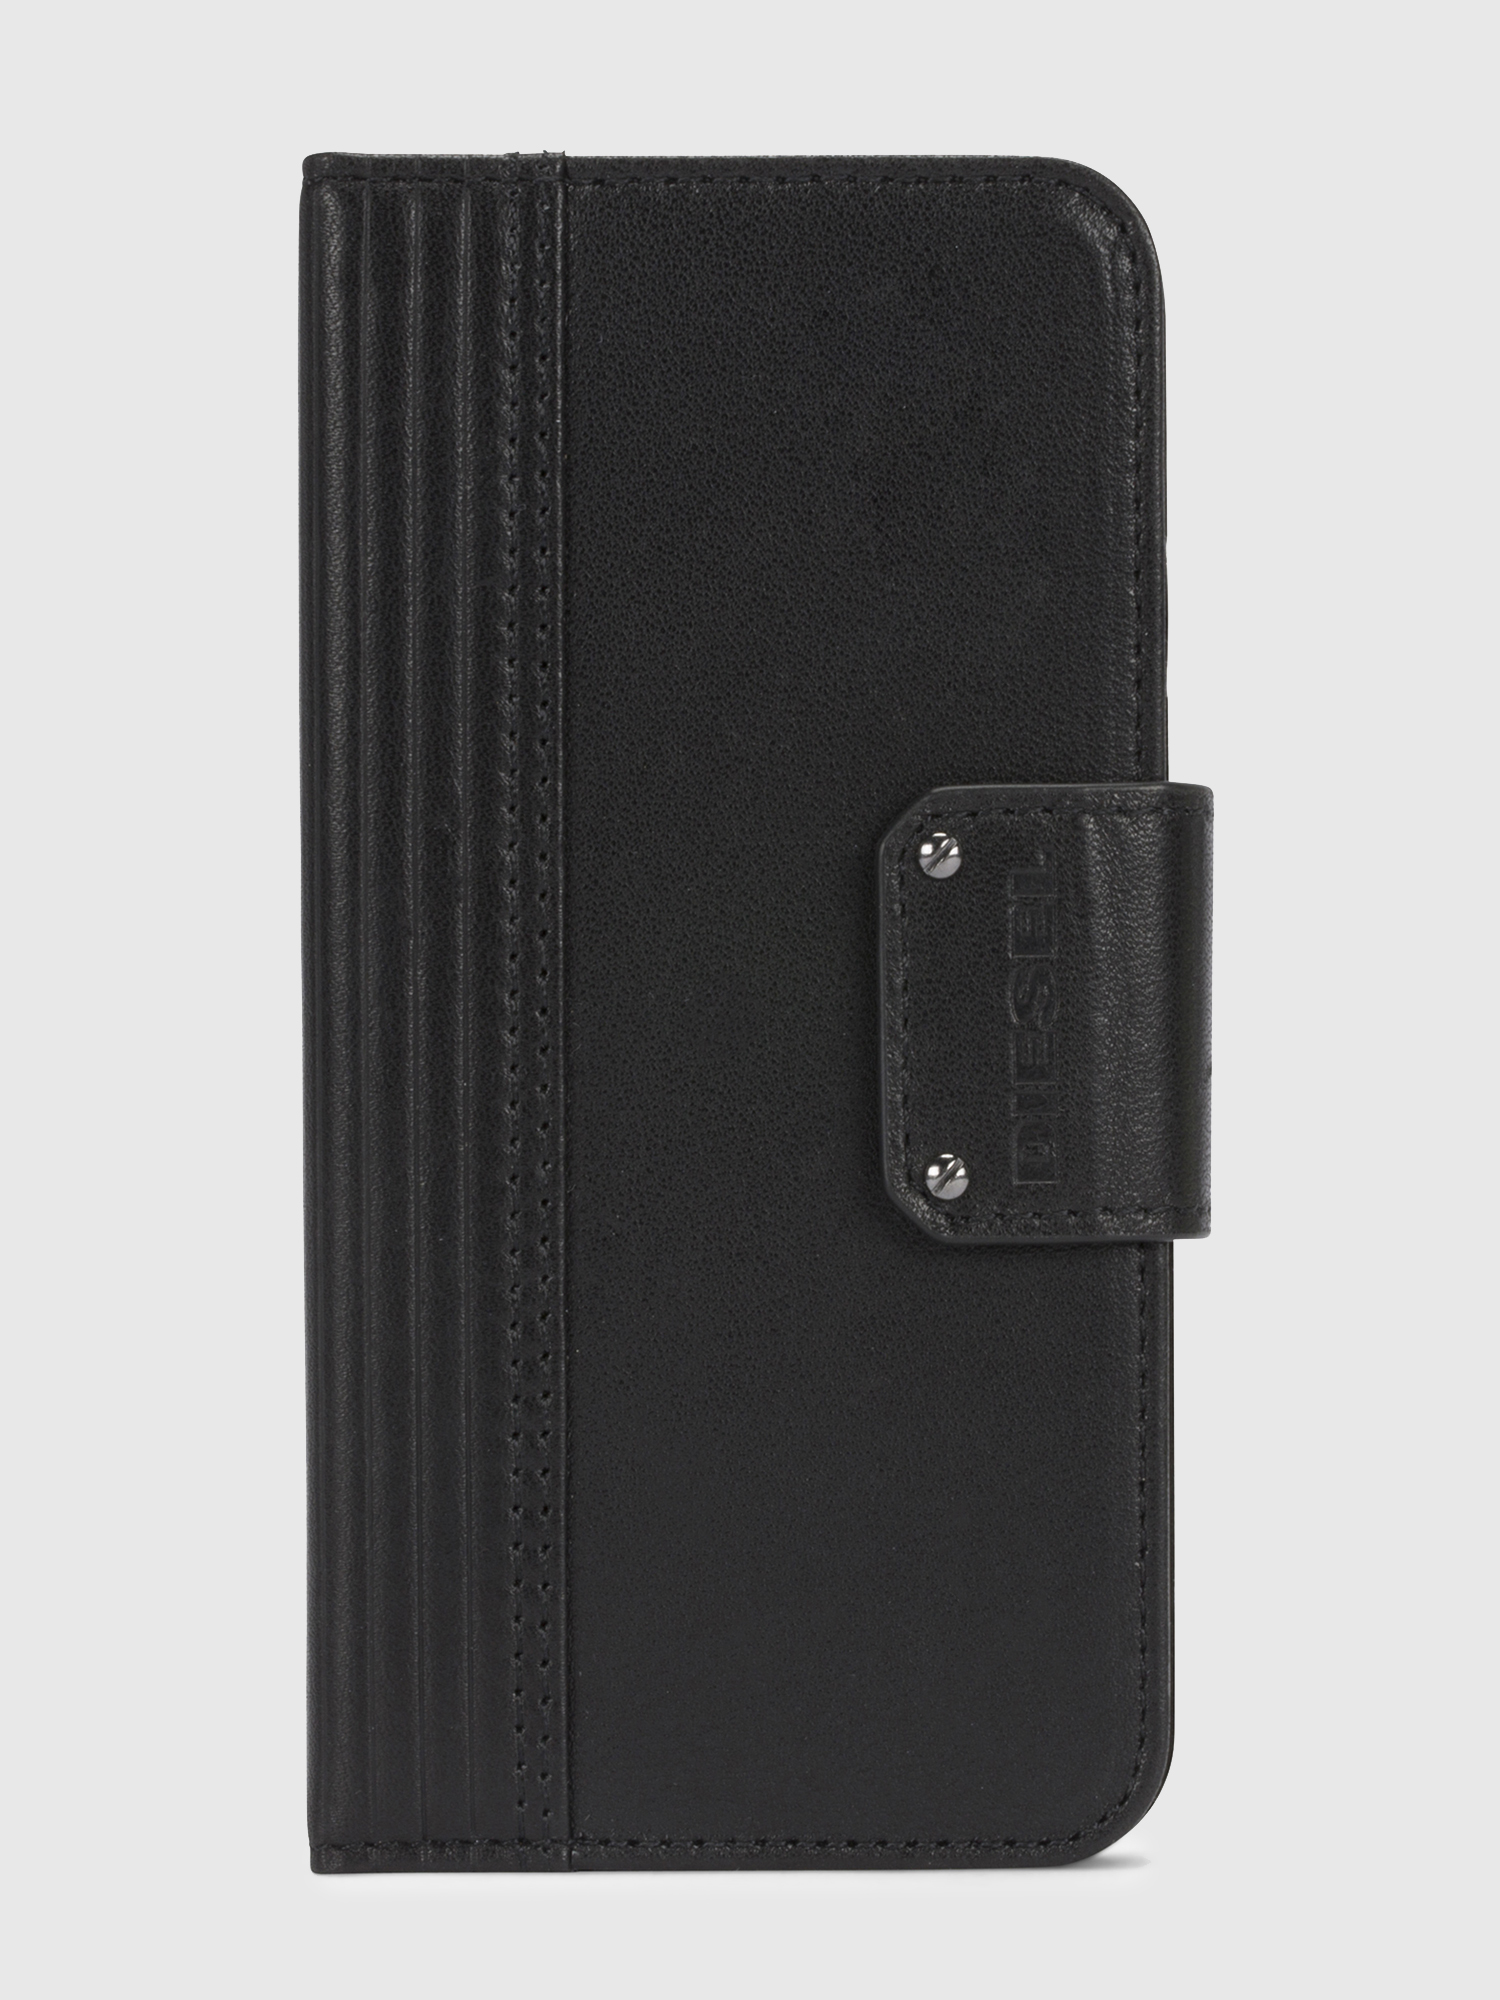 Diesel - BLACK LINED LEATHER IPHONE X FOLIO,  - Coques à rabat - Image 2